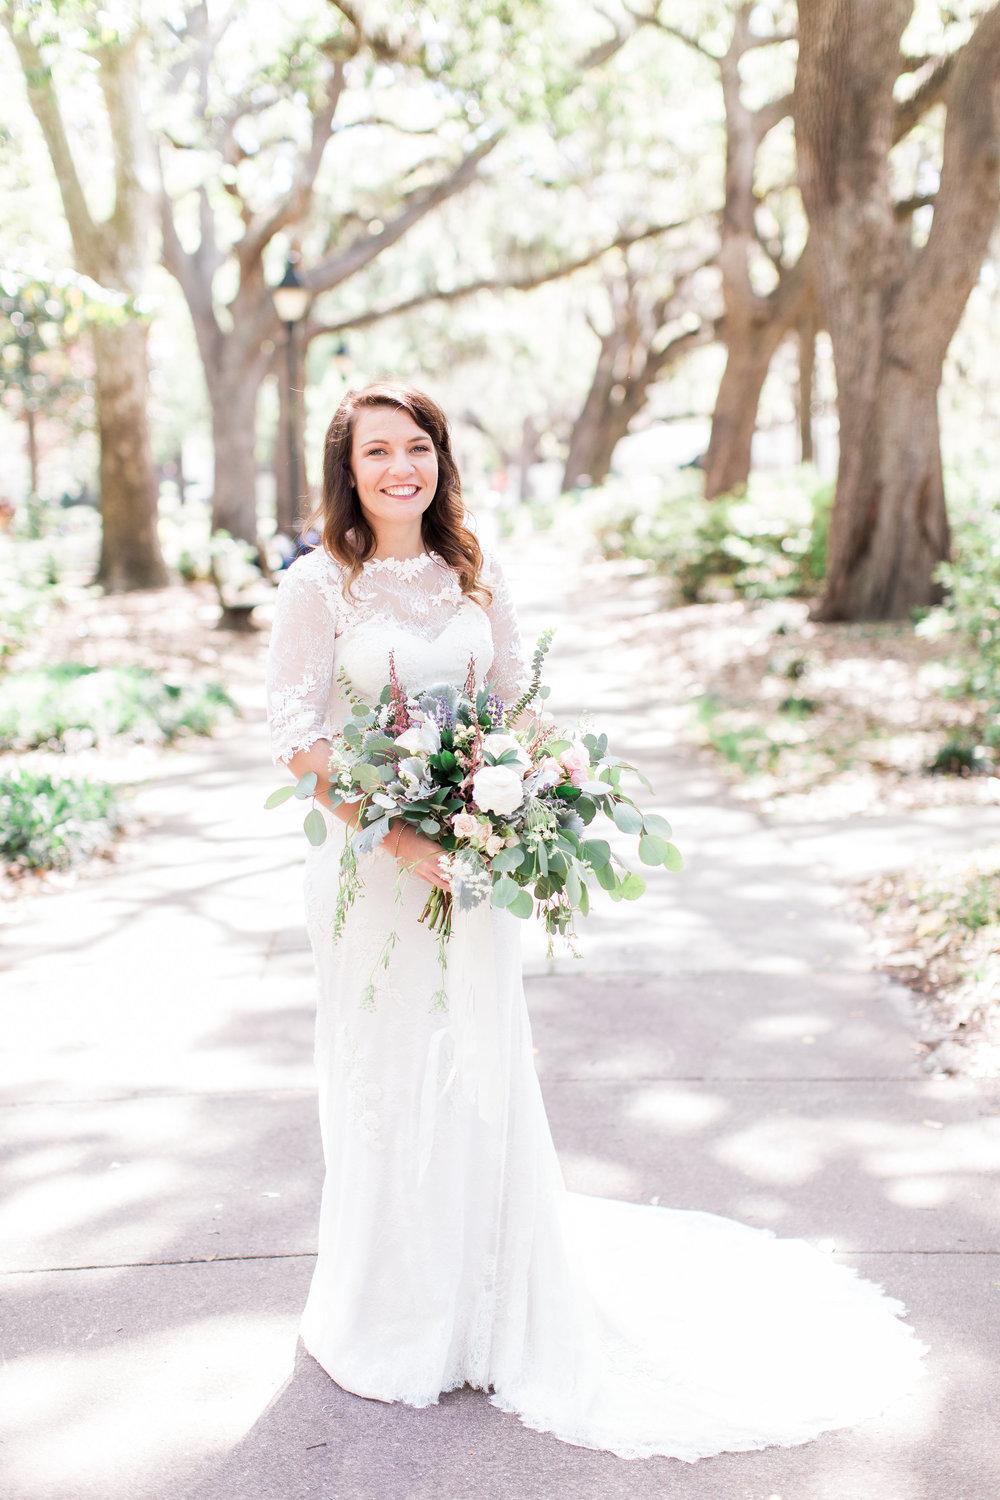 apt-b-photography-ivory-and-beau-bridal-boutique-savannah-florist-savannah-bridal-boutique-savannah-elopment-forsyth-fountain-wedding-intimate-wedding-southern-elopement-savannah-weddings-25.jpg